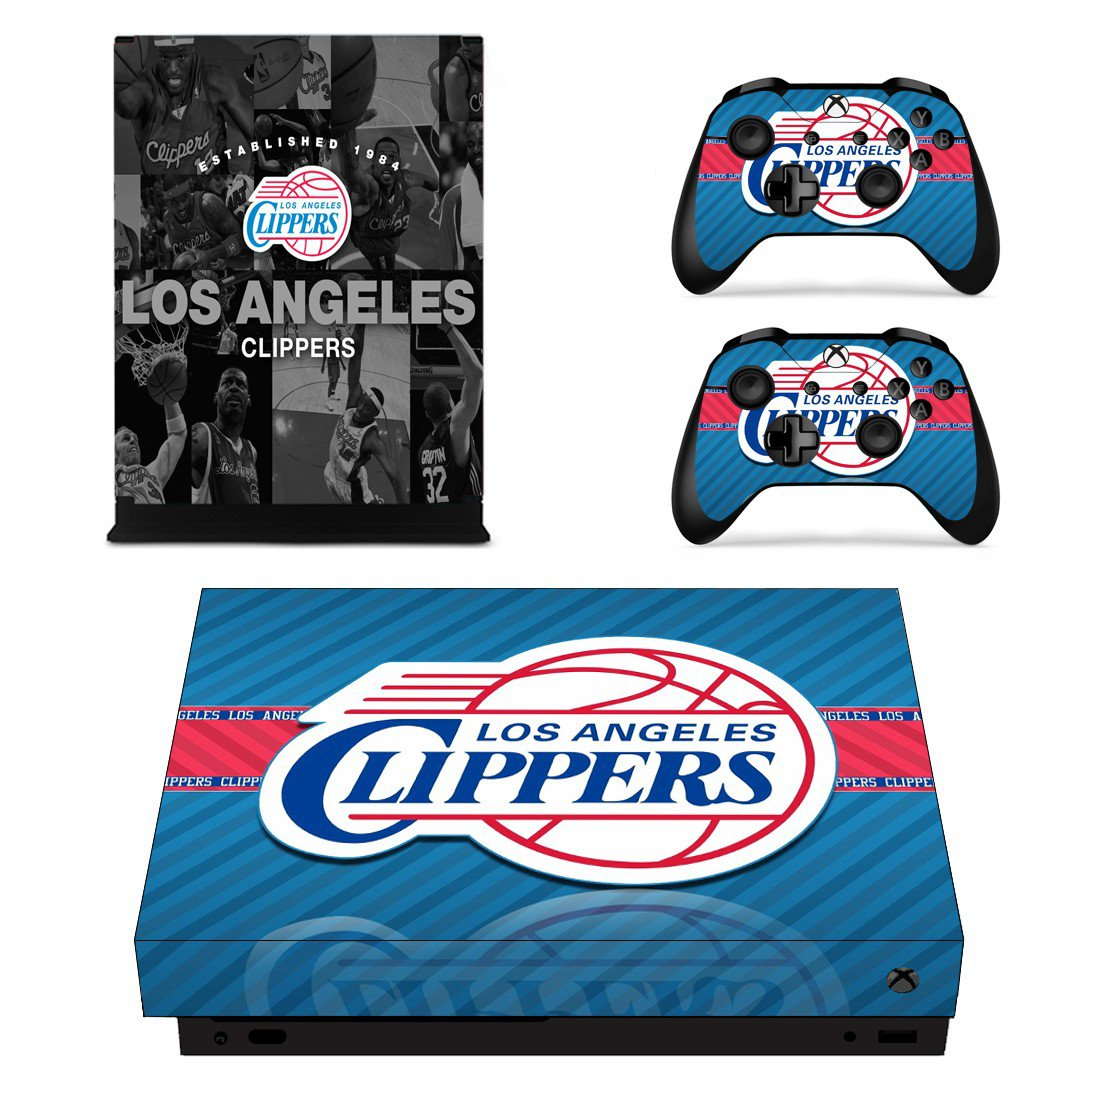 Los Angeles Clippers skin decal for Xbox one X console and controllers